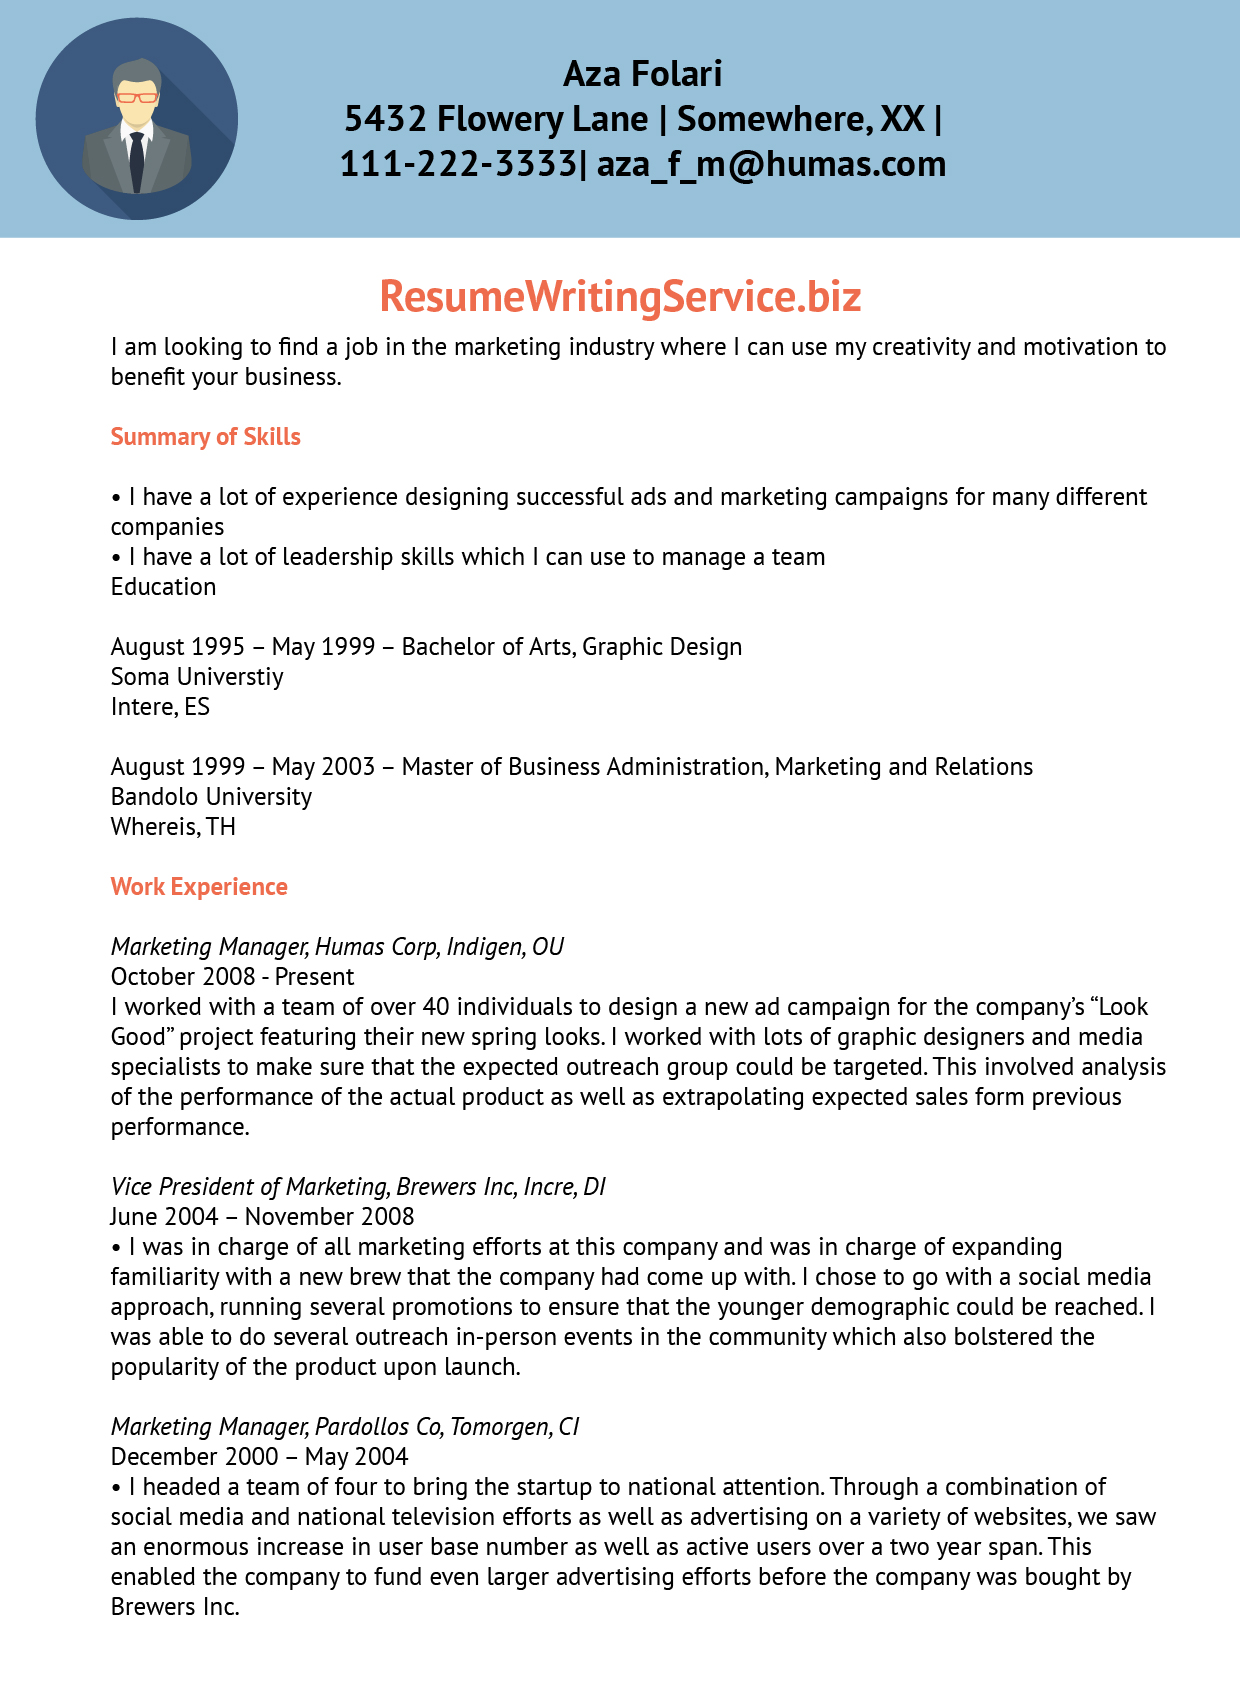 Marketing resume writing service